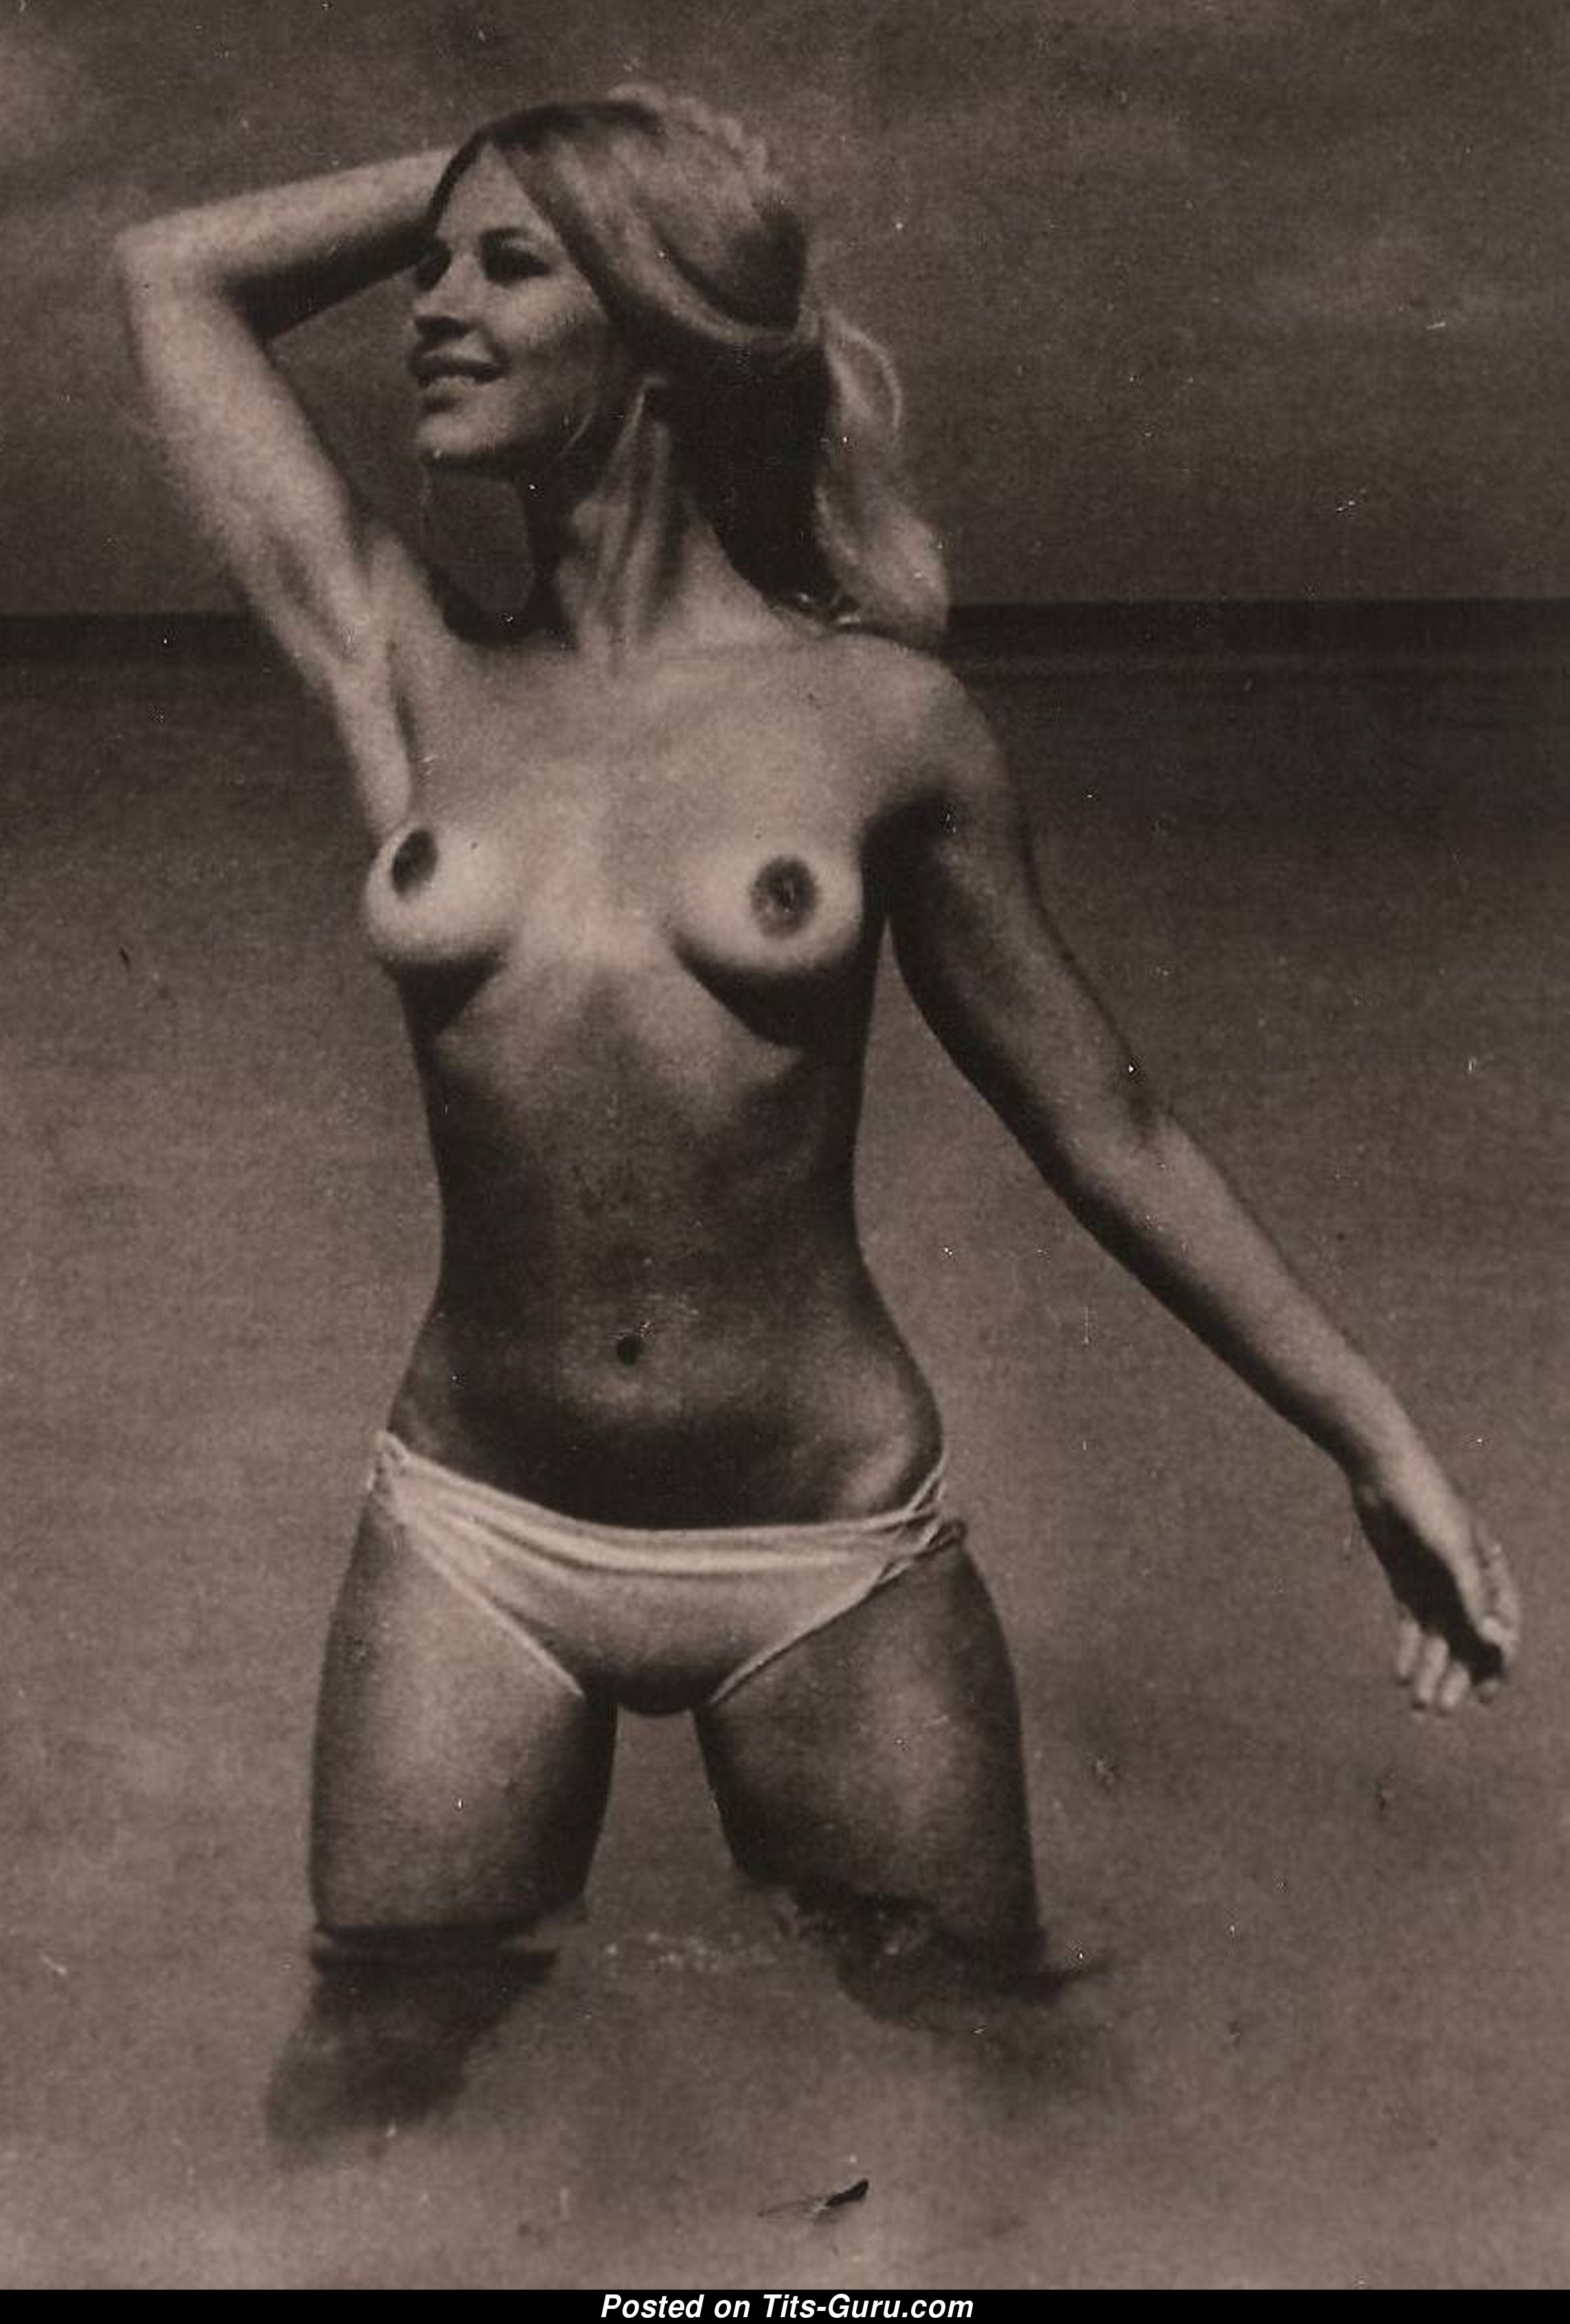 Brigitte bardot porn suggest you